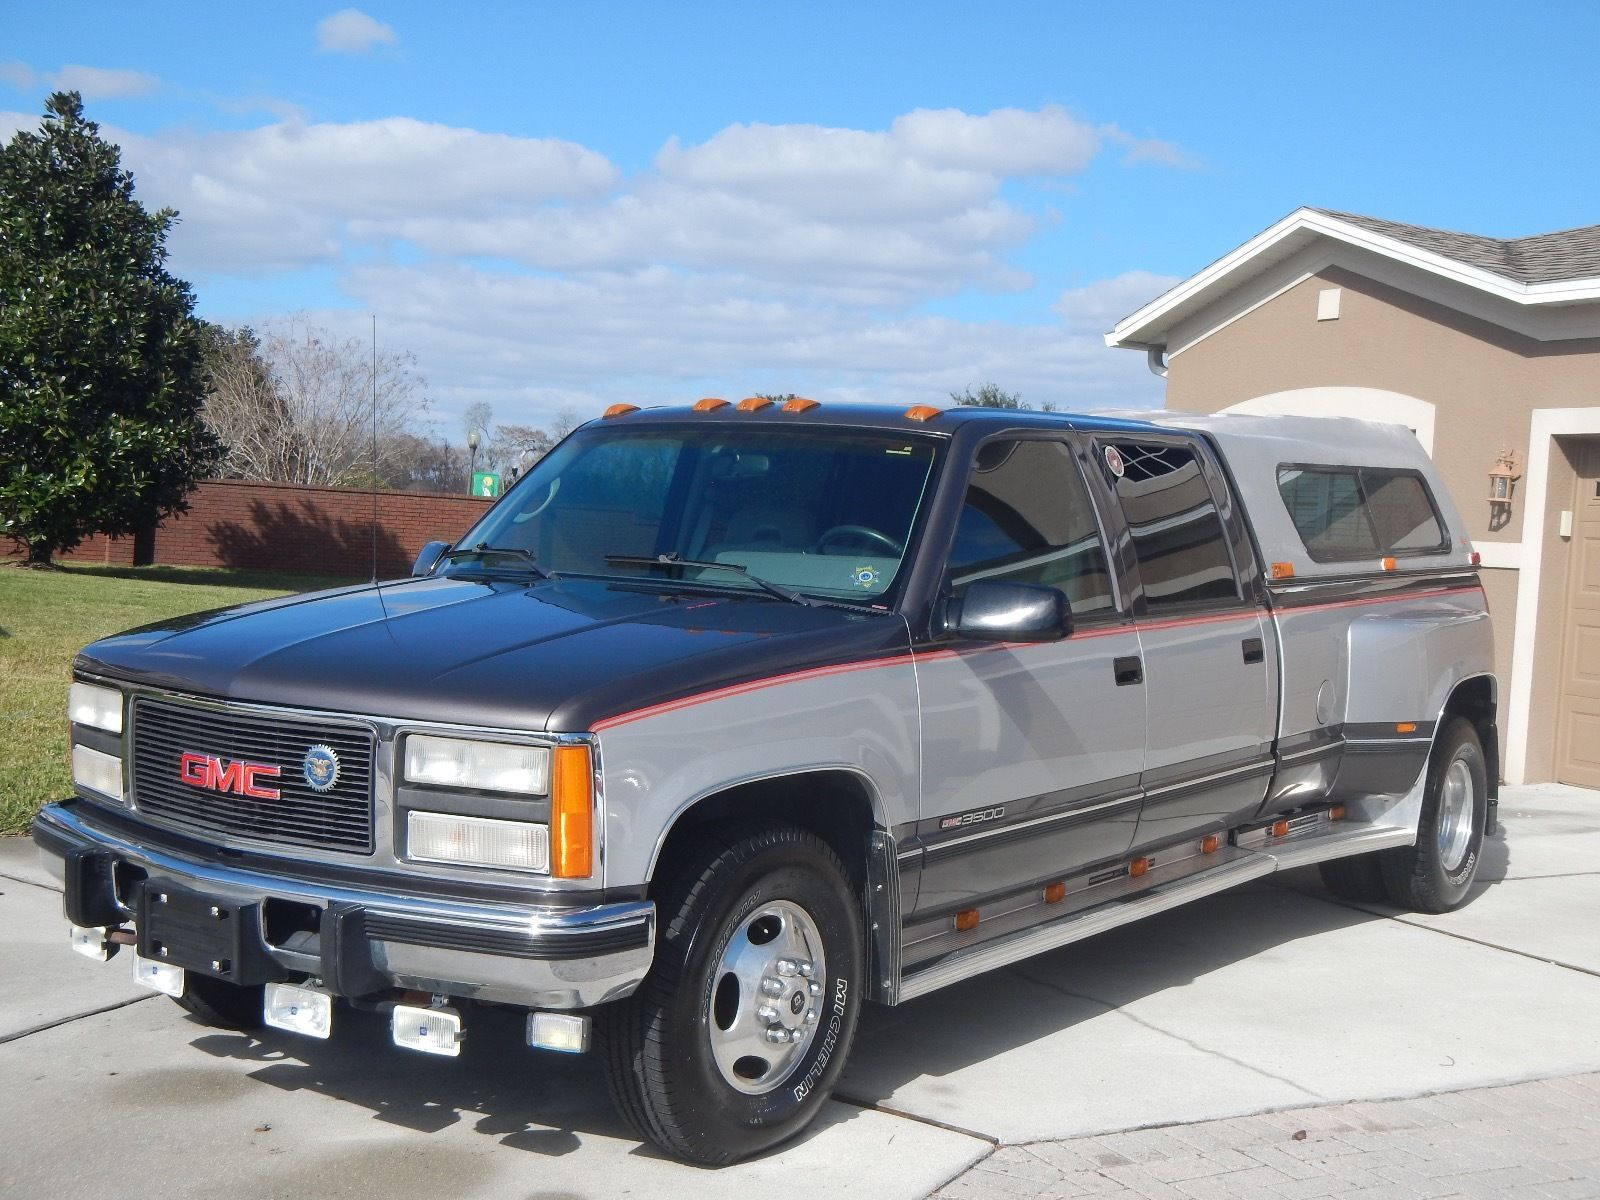 1993 gmc sierra 3500 crew cab 6 5 turbo diesel dually for sale. Black Bedroom Furniture Sets. Home Design Ideas